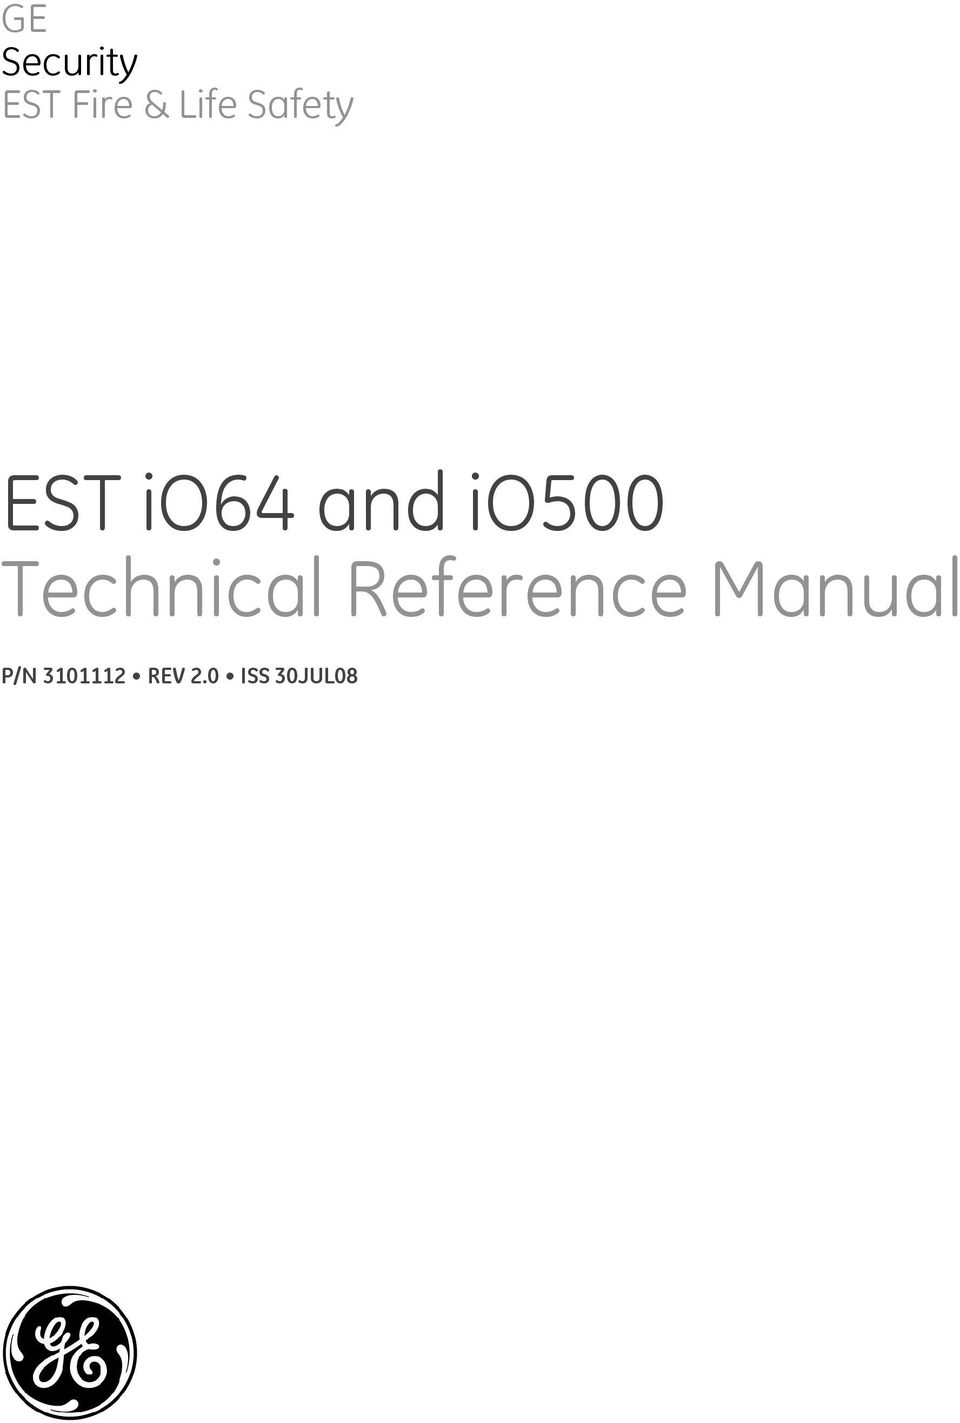 paragon 2 technical reference manual